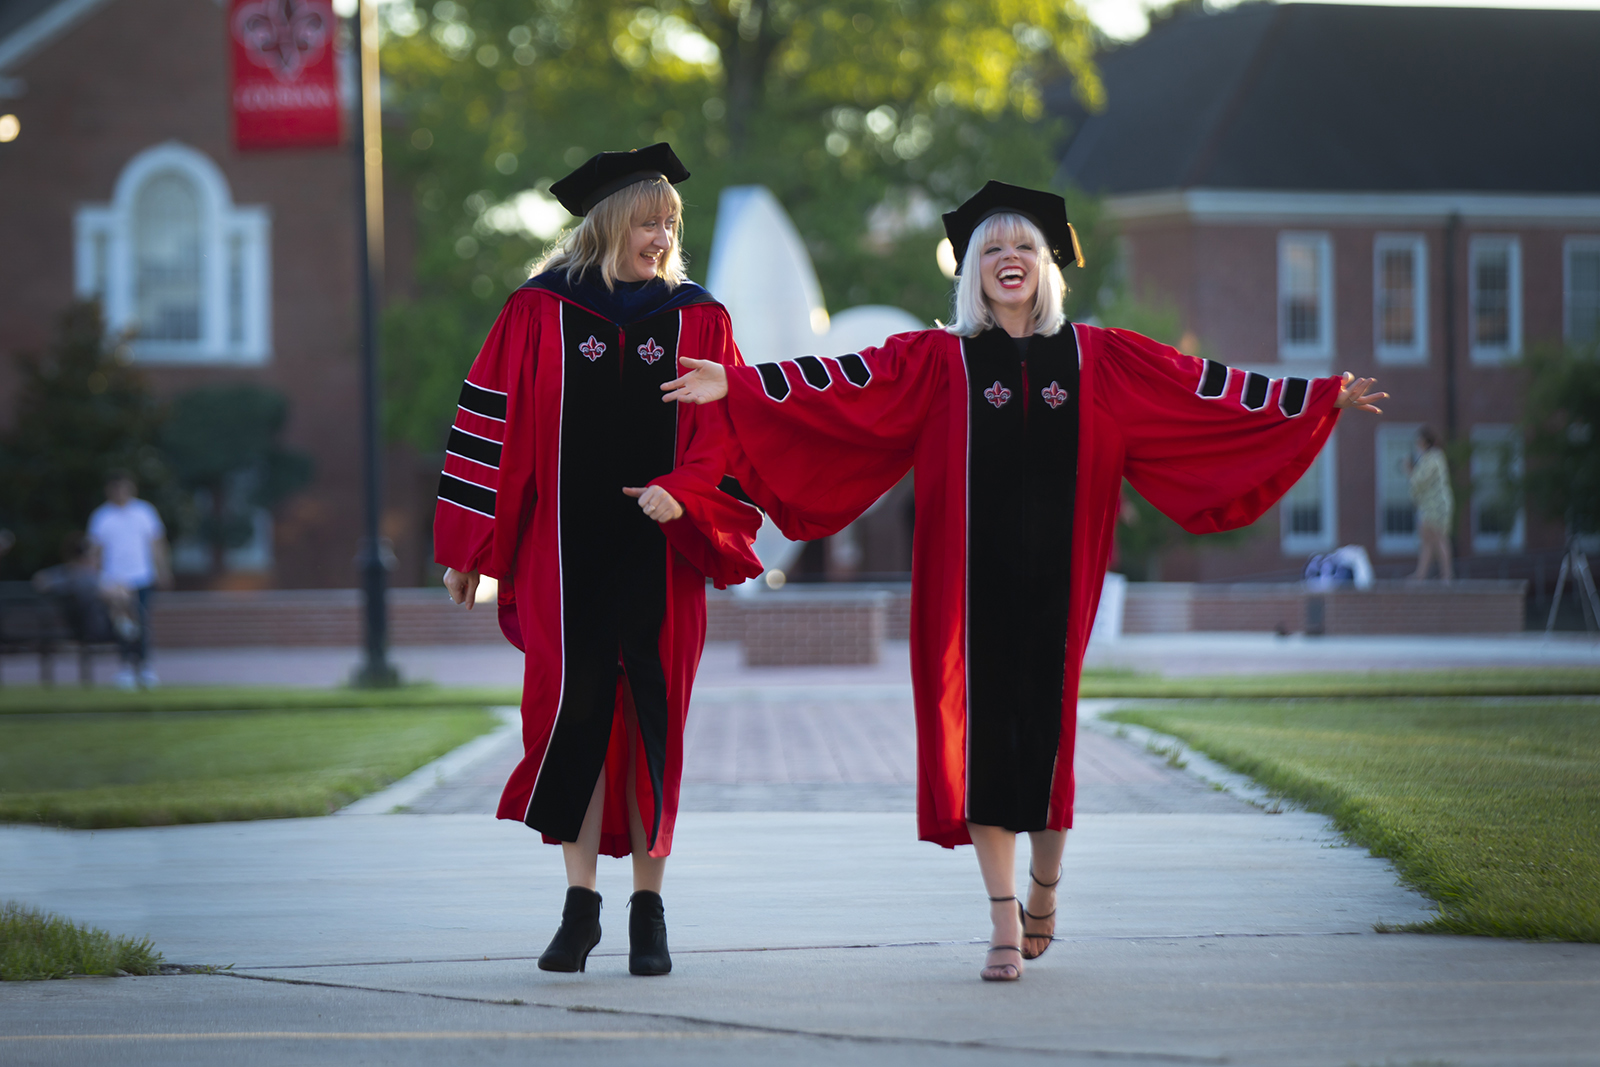 Patti Jeane Pangborn, left, and Samantha Castleman were among a record 1,173 women who received degrees Friday from the University of Louisiana at Lafayette. Both, seen here in the University's Quadrangle in the days leading up to Friday's virtual Commencement, completed doctoral degrees in English. (Photo credit: Doug Dugas / University of Louisiana at Lafayette)